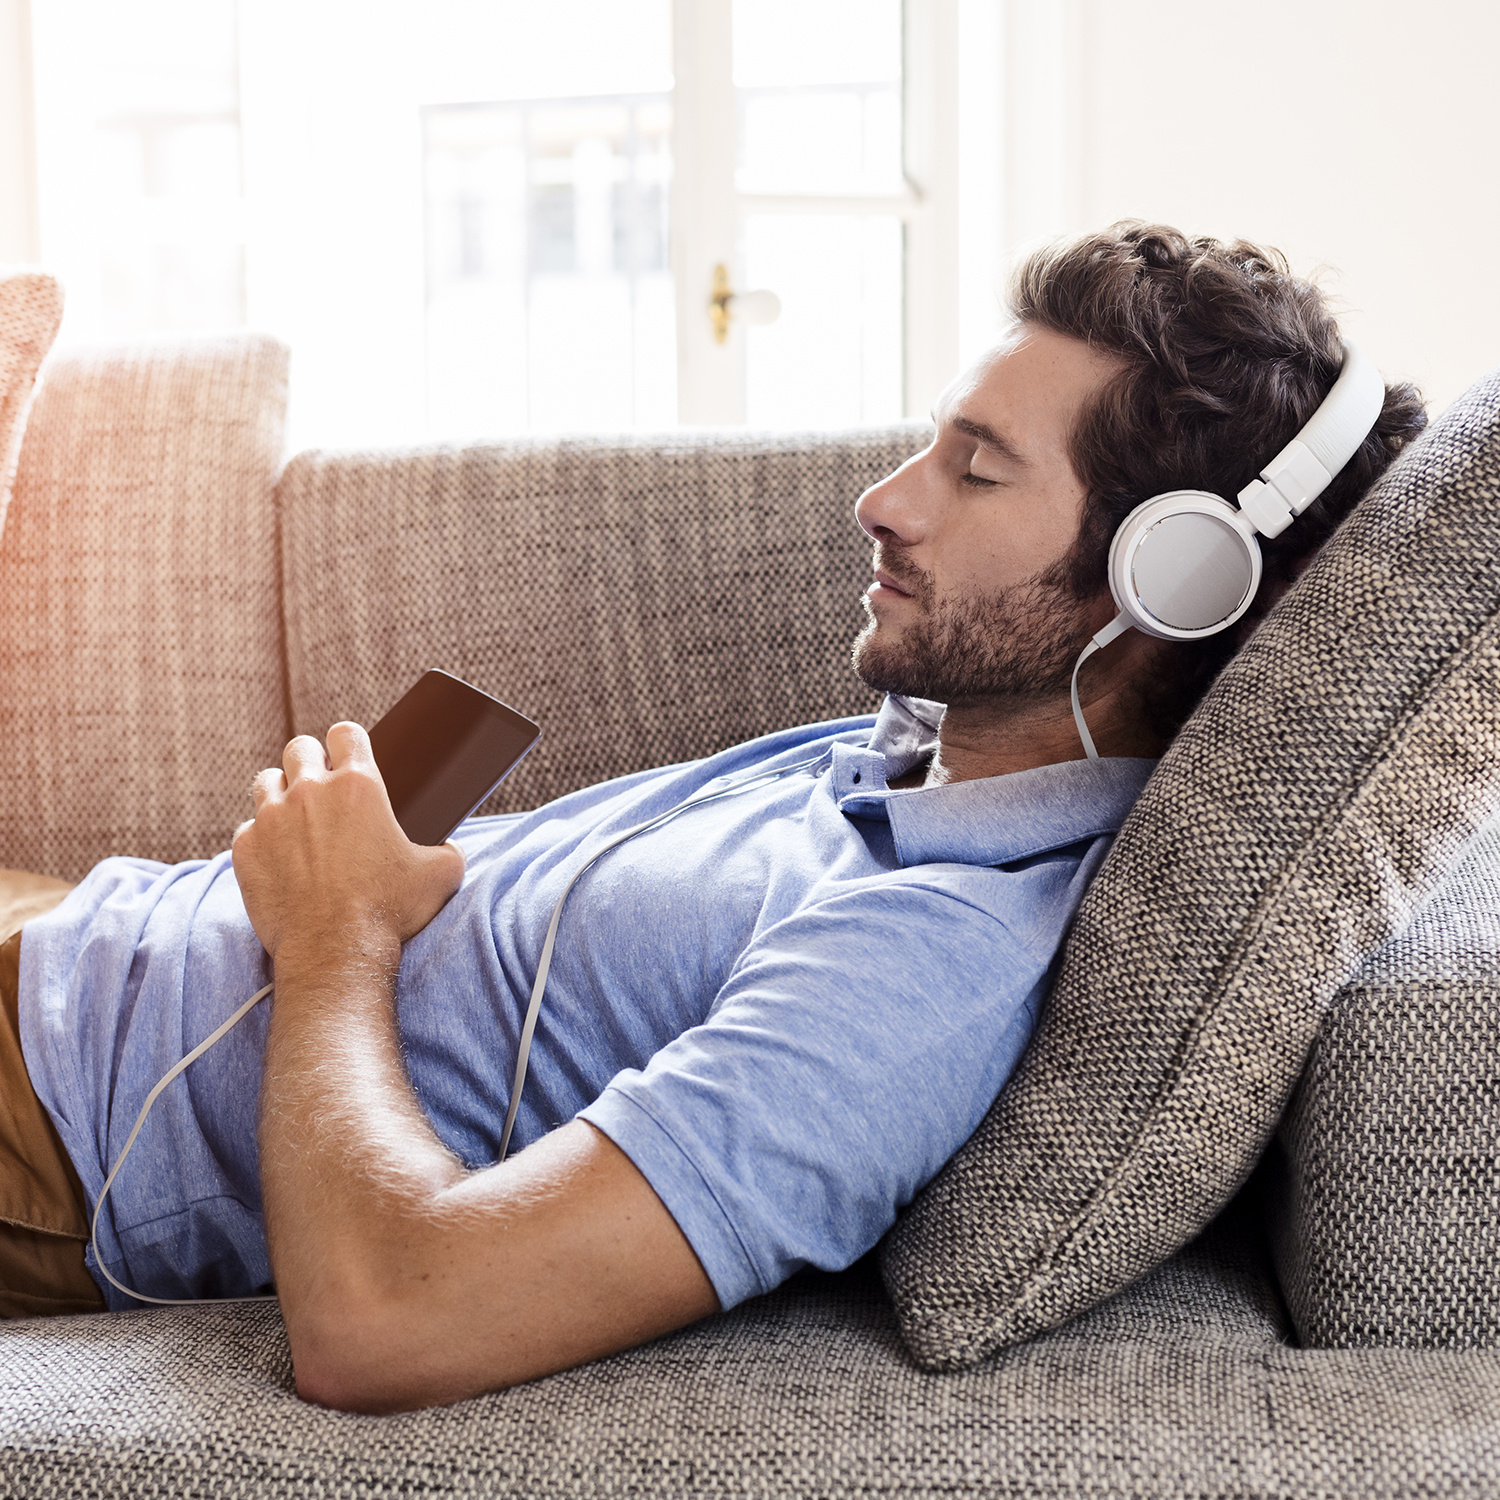 Relaxation Techniques for Health | NCCIH